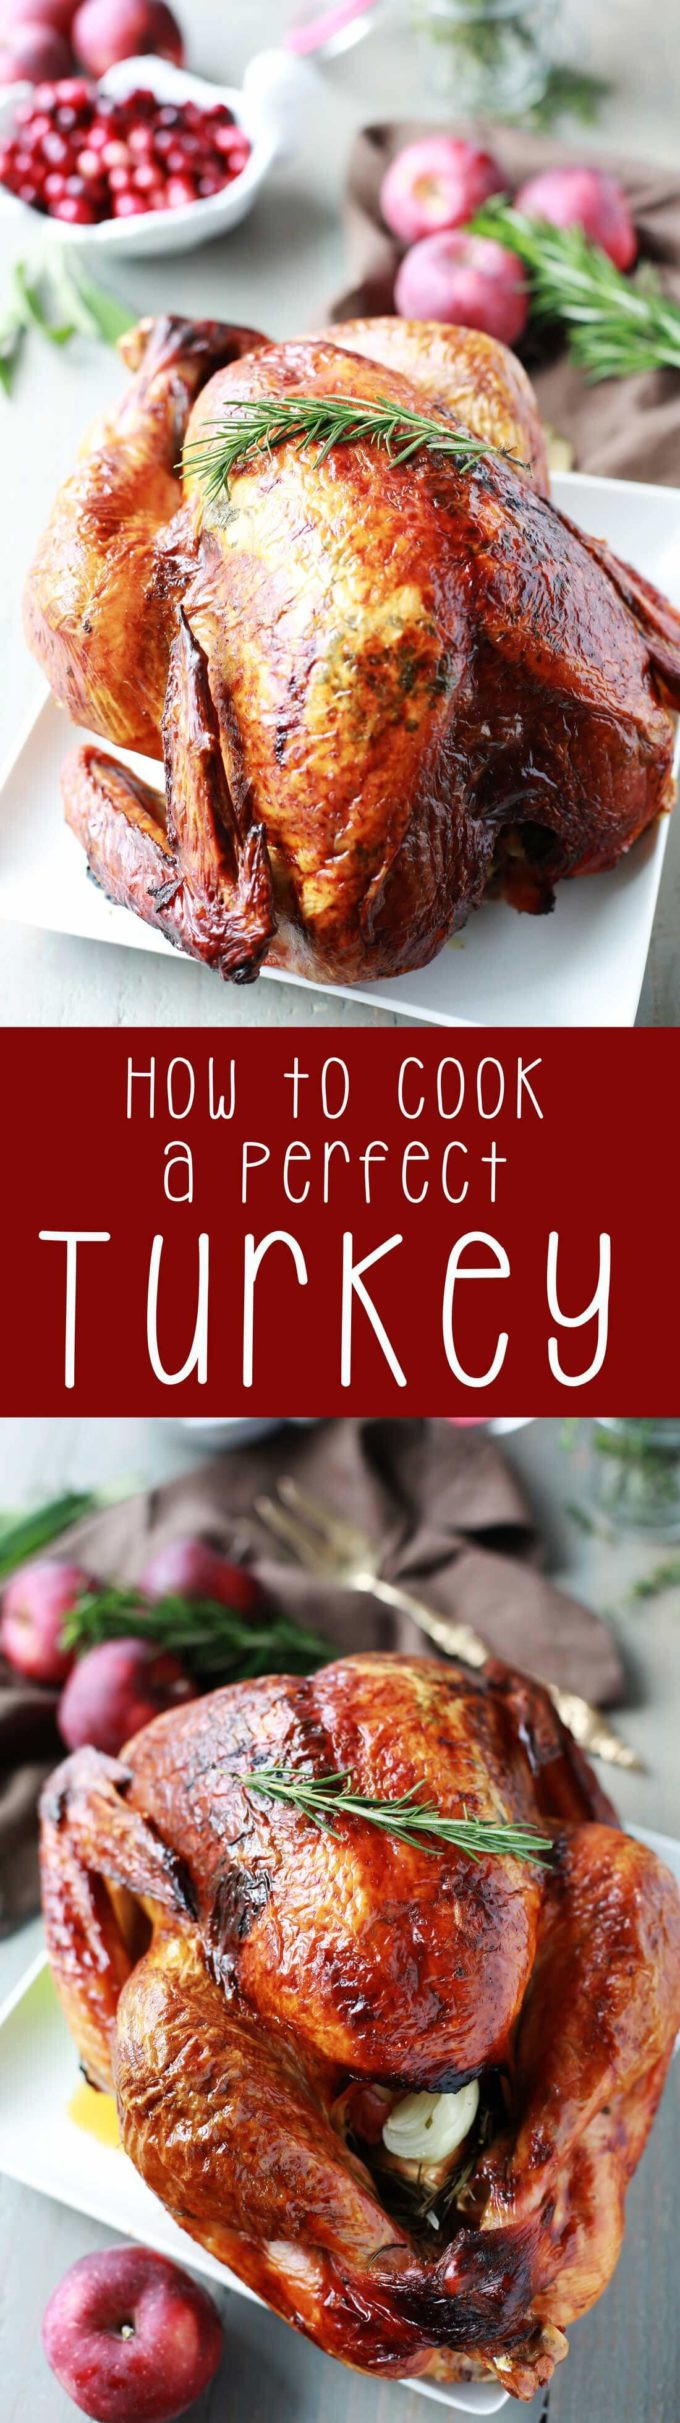 Prepare Turkey For Thanksgiving  How to Cook a Perfect Turkey Eazy Peazy Mealz